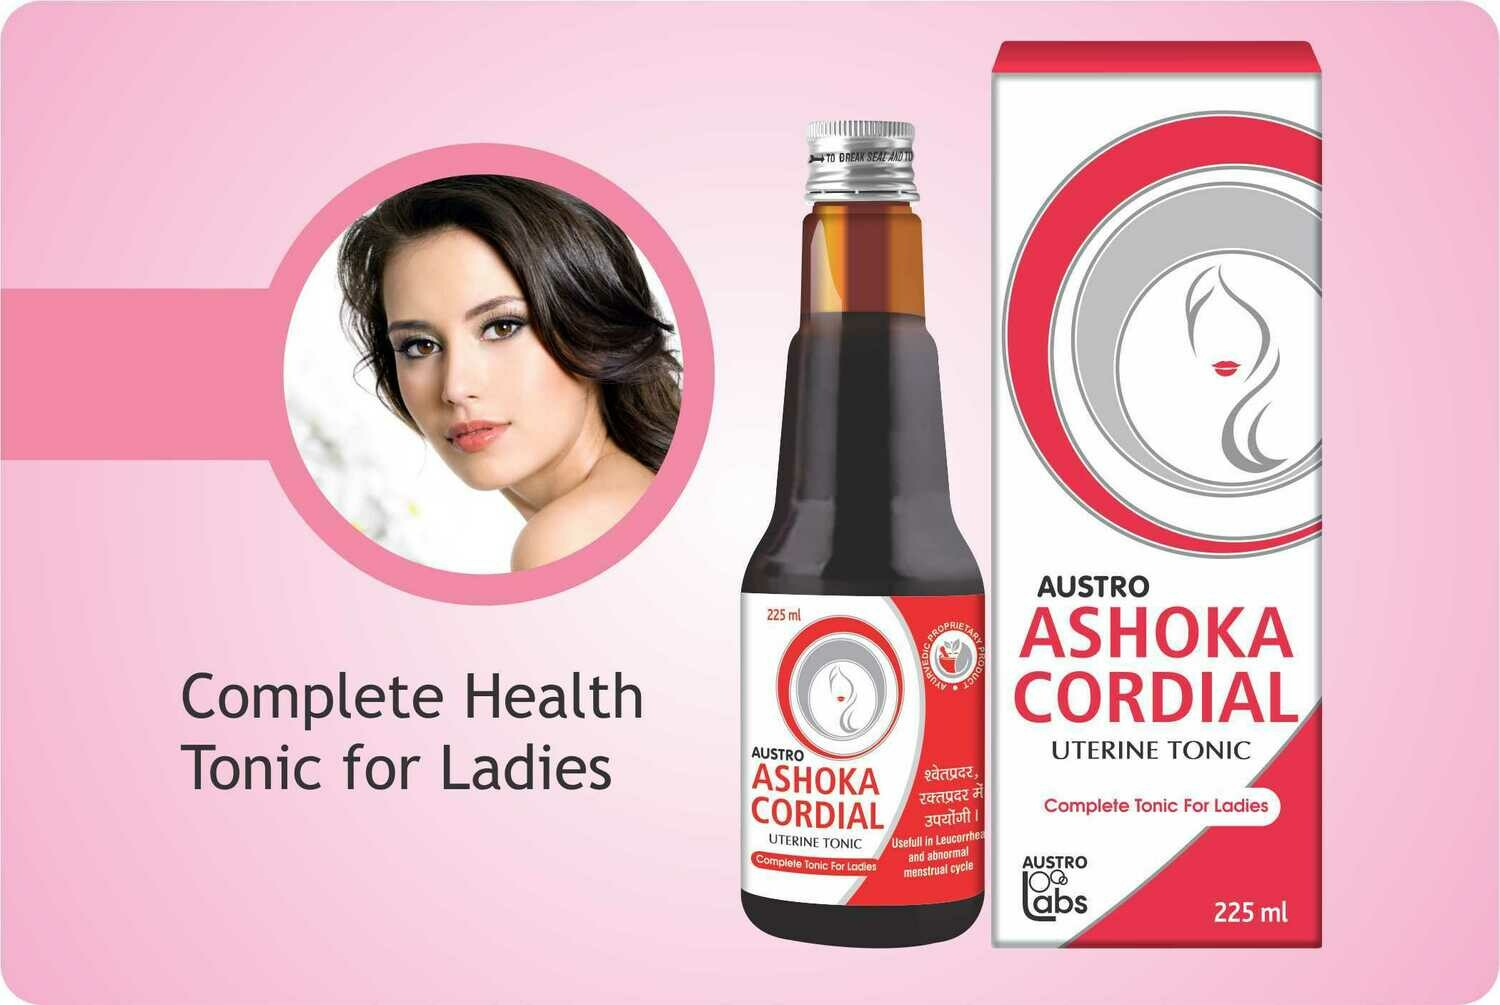 Austro Ashoka Cordial Uterine Tonic for Women